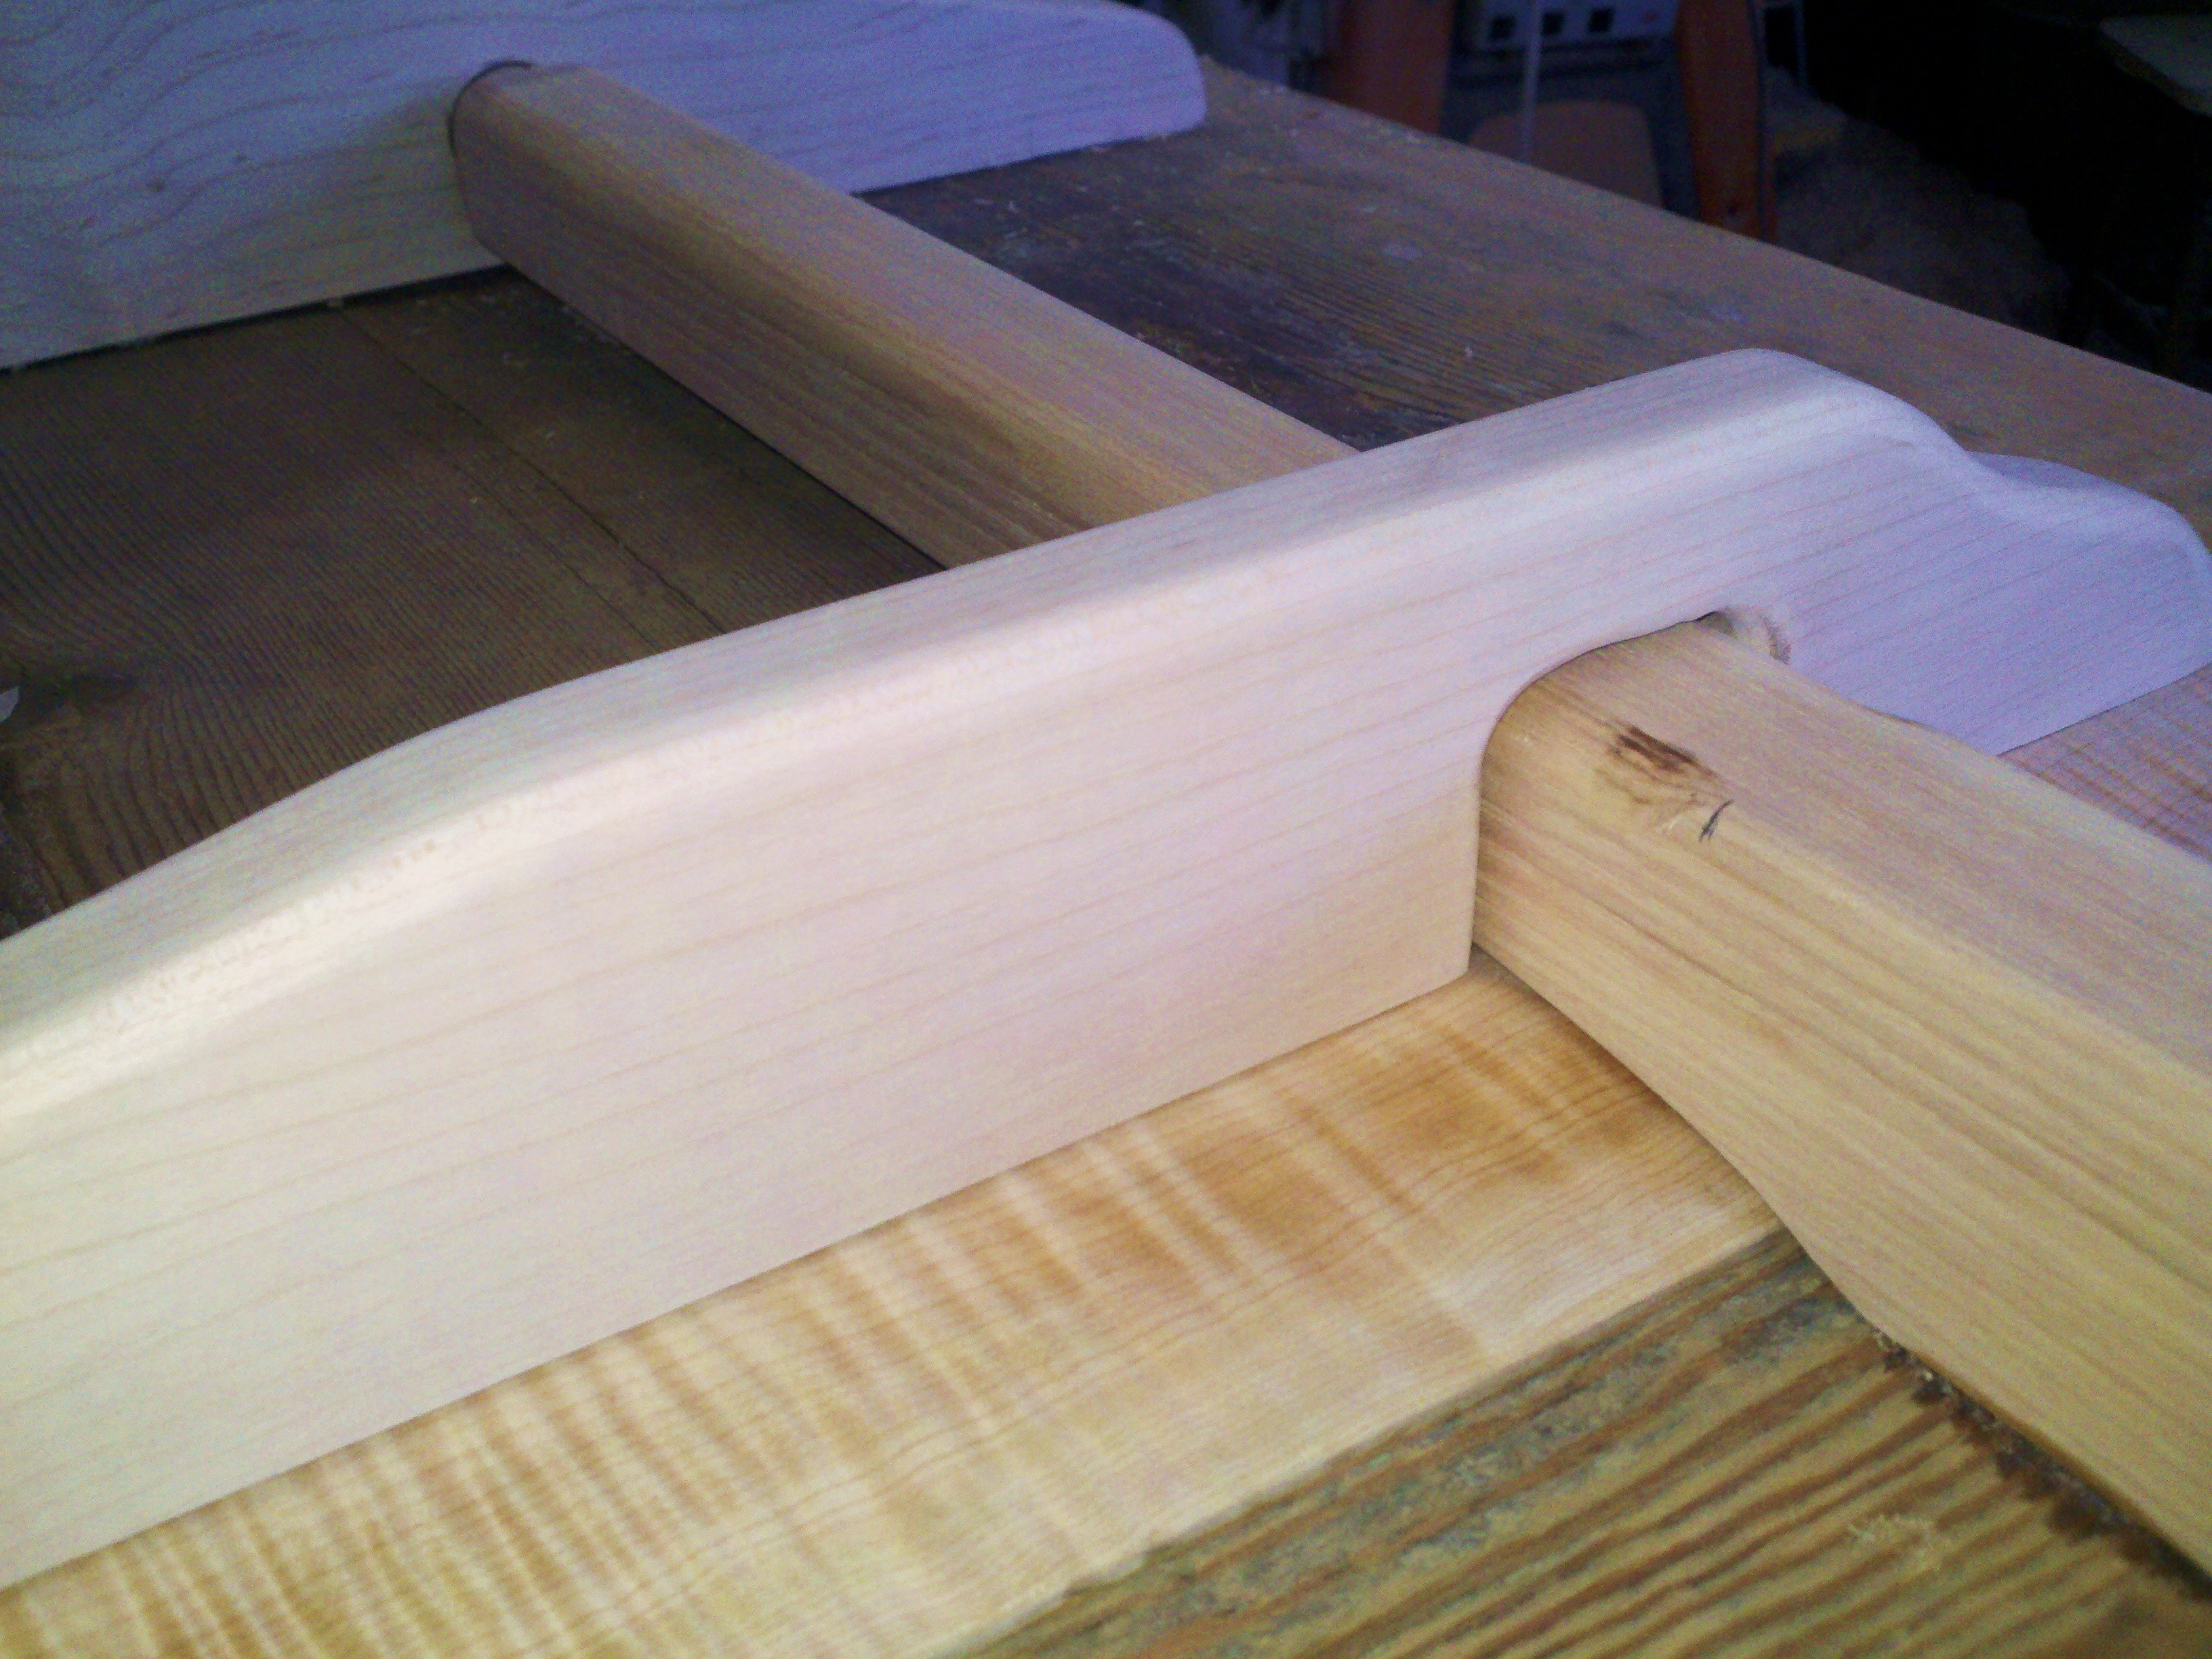 Ash leaf slide for trestle table